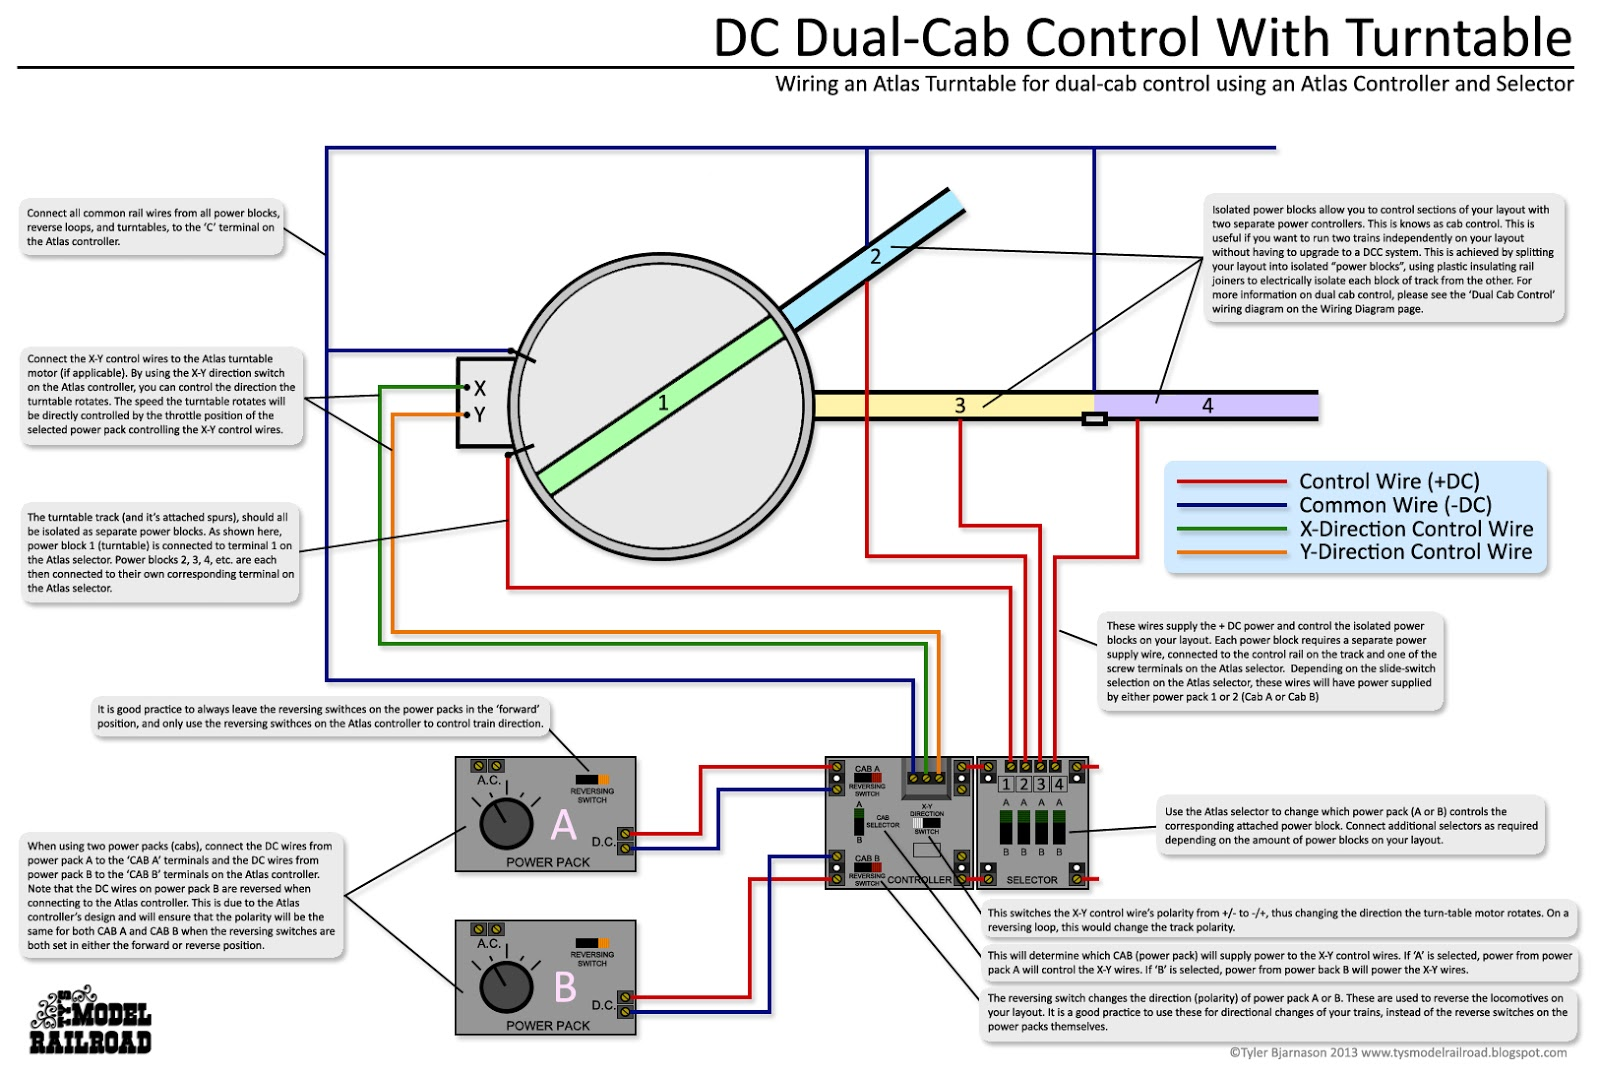 Tys model railroad wiring diagrams how to use dual cab control to power and operate a turntable and turntable motor using greentooth Images